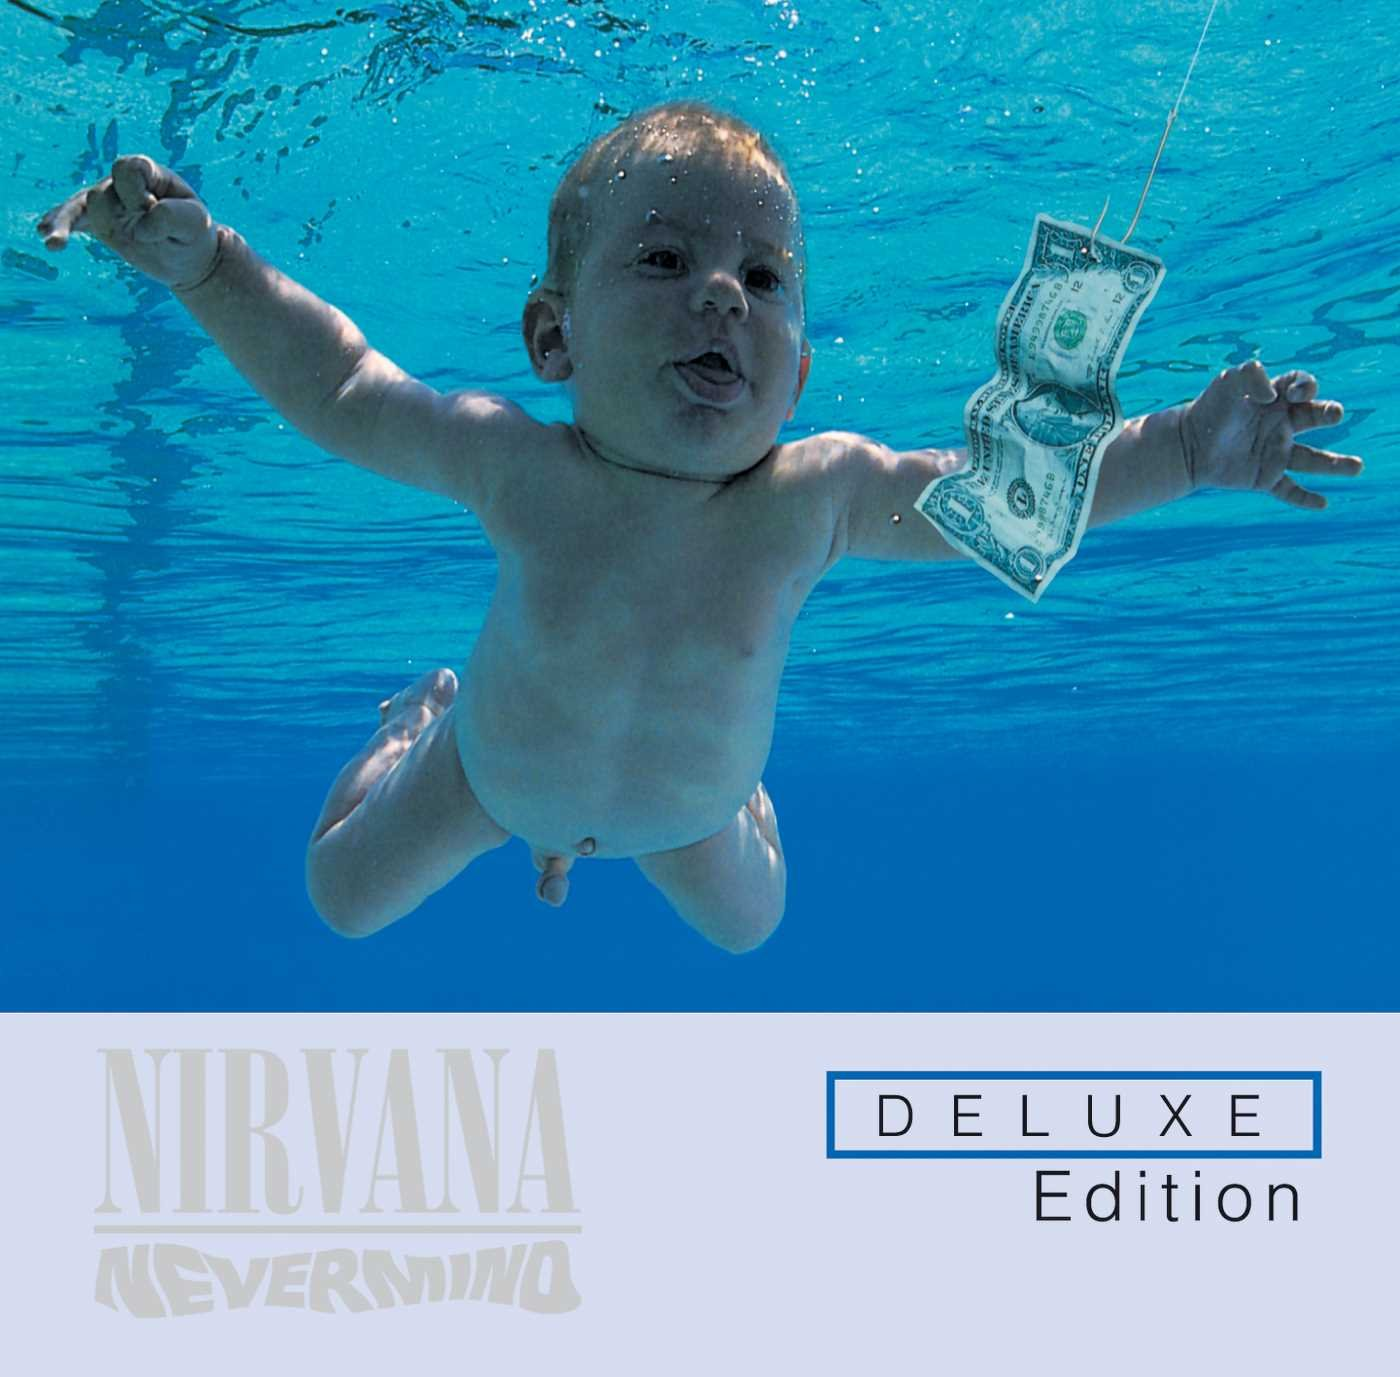 Nevermind [4CD/DVD Super Deluxe Box Set] by CD